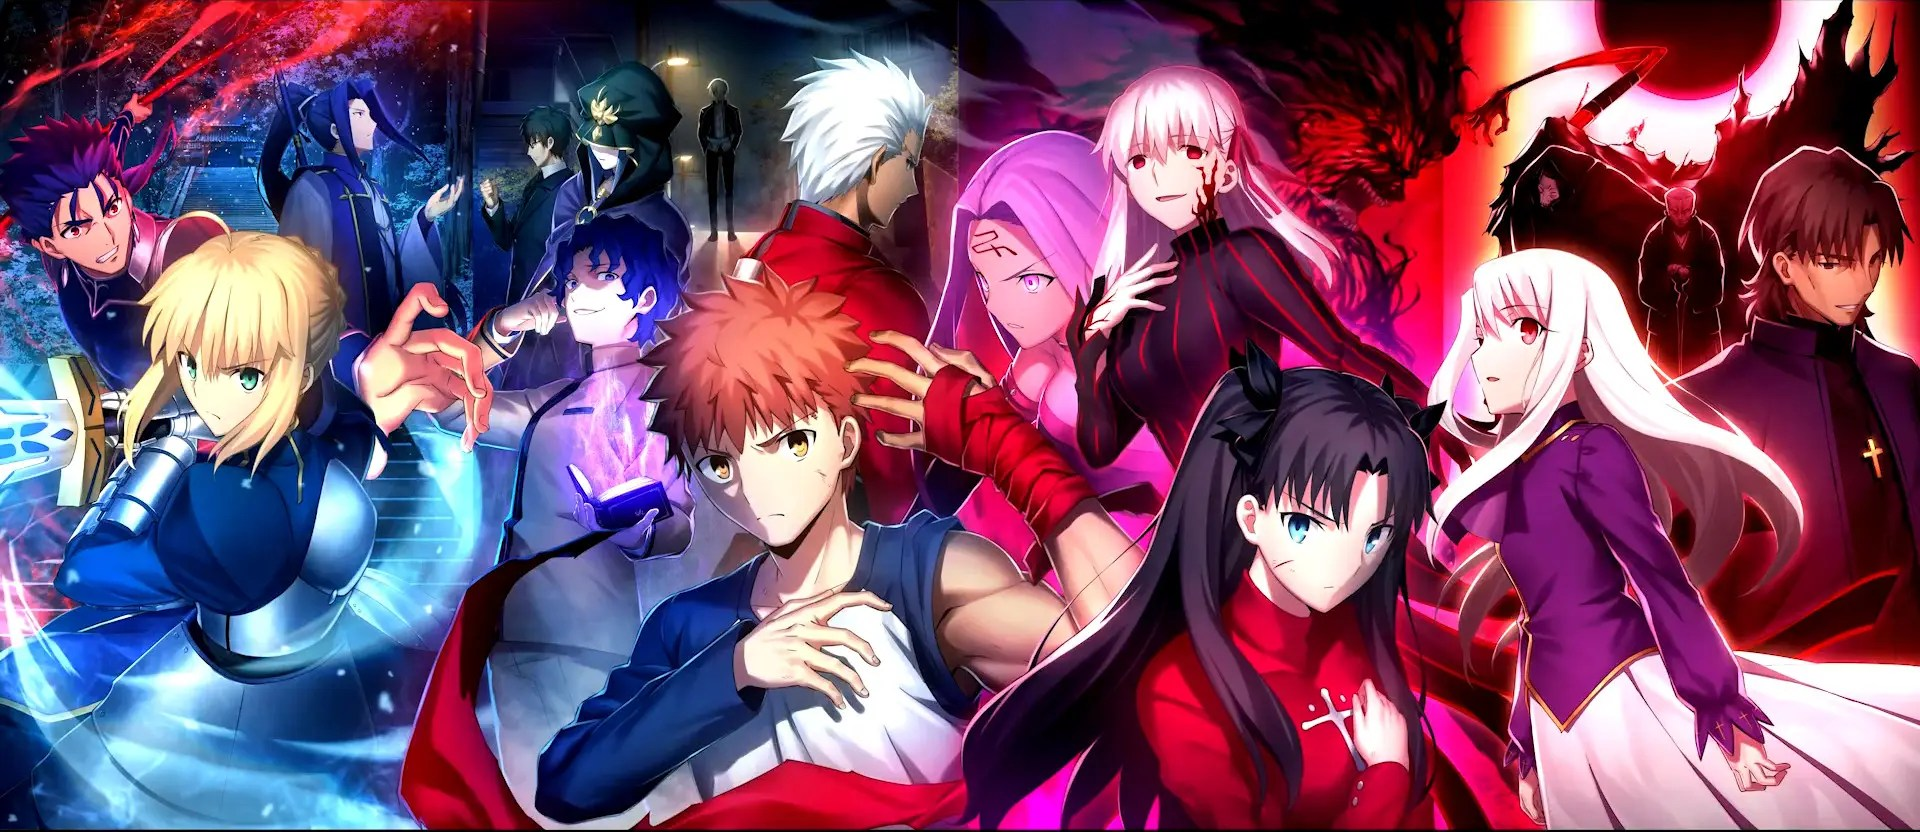 Illustration pour le film Fate Stay Night Heavens Feel 3 Spring Song